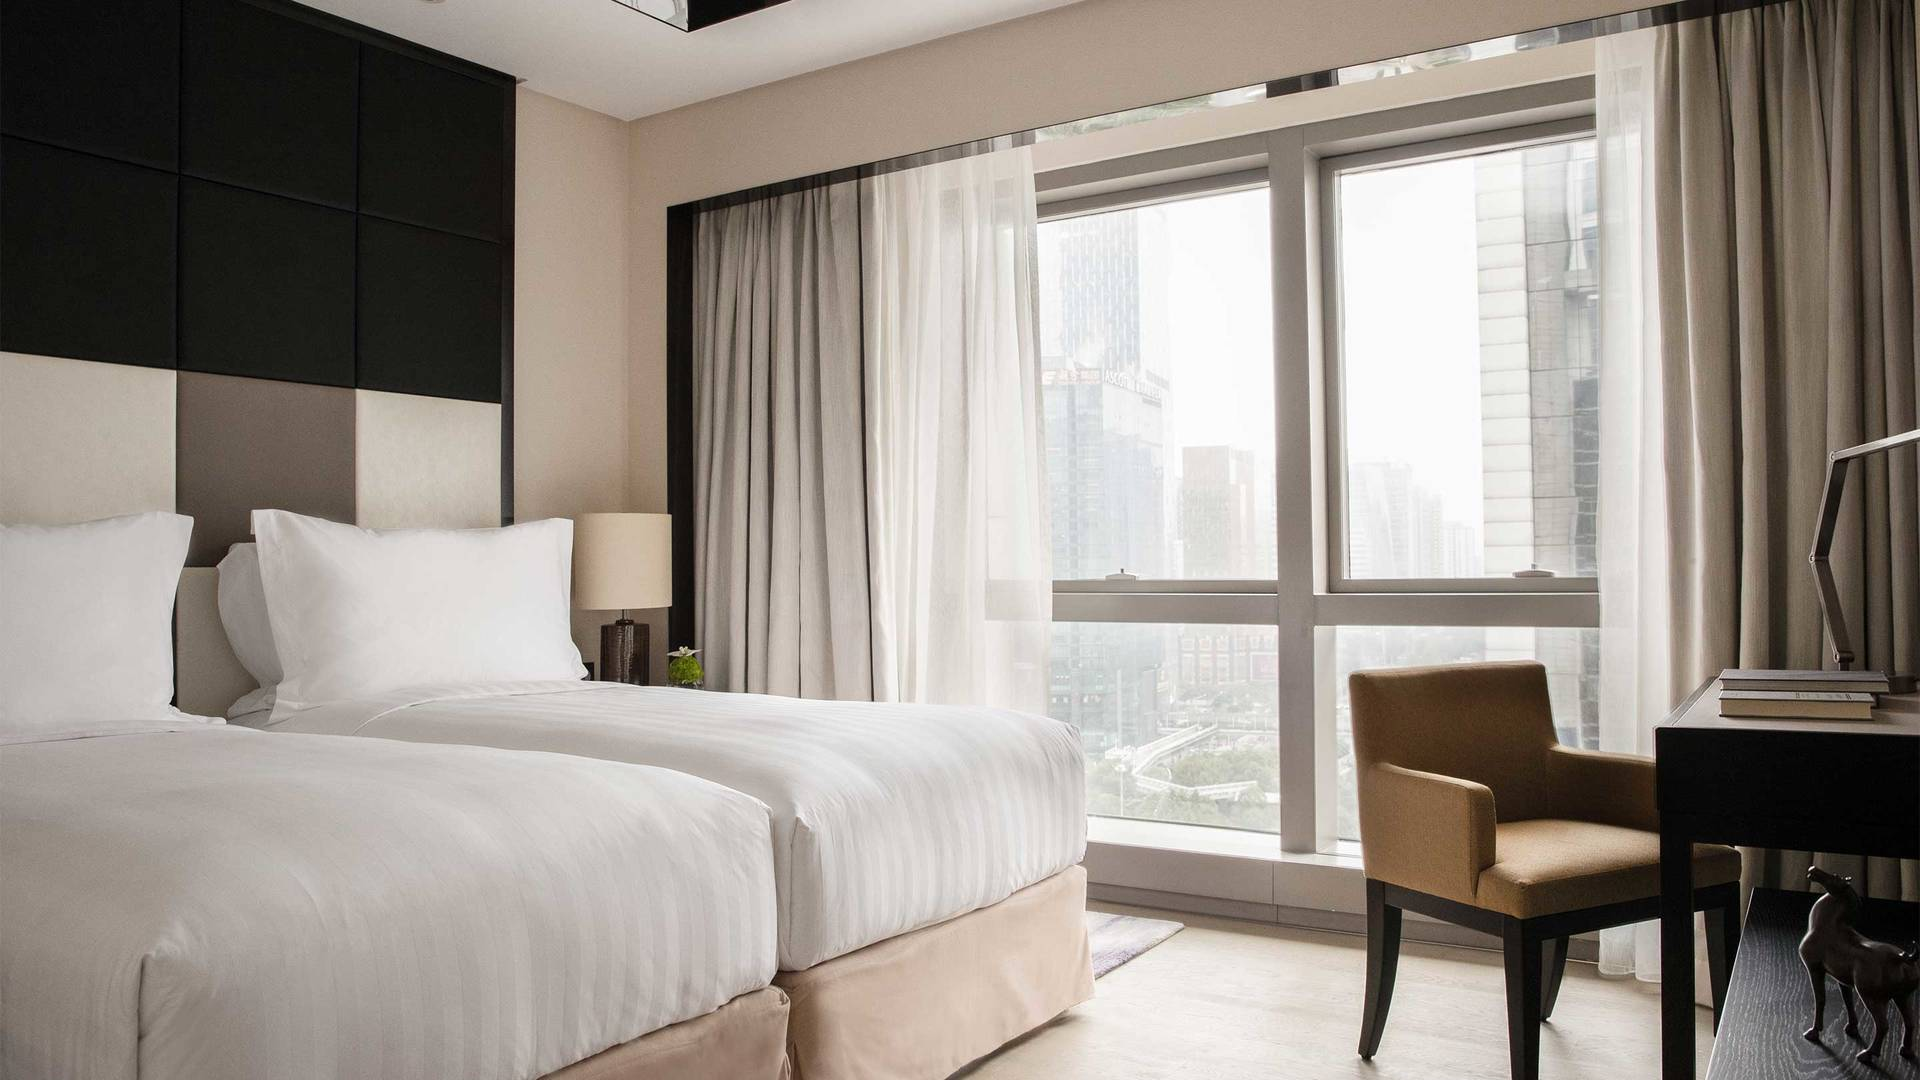 16-9 JUMEIRAH LIVING GUANGZHOU Contemporary 2 bed room suite bed room 01